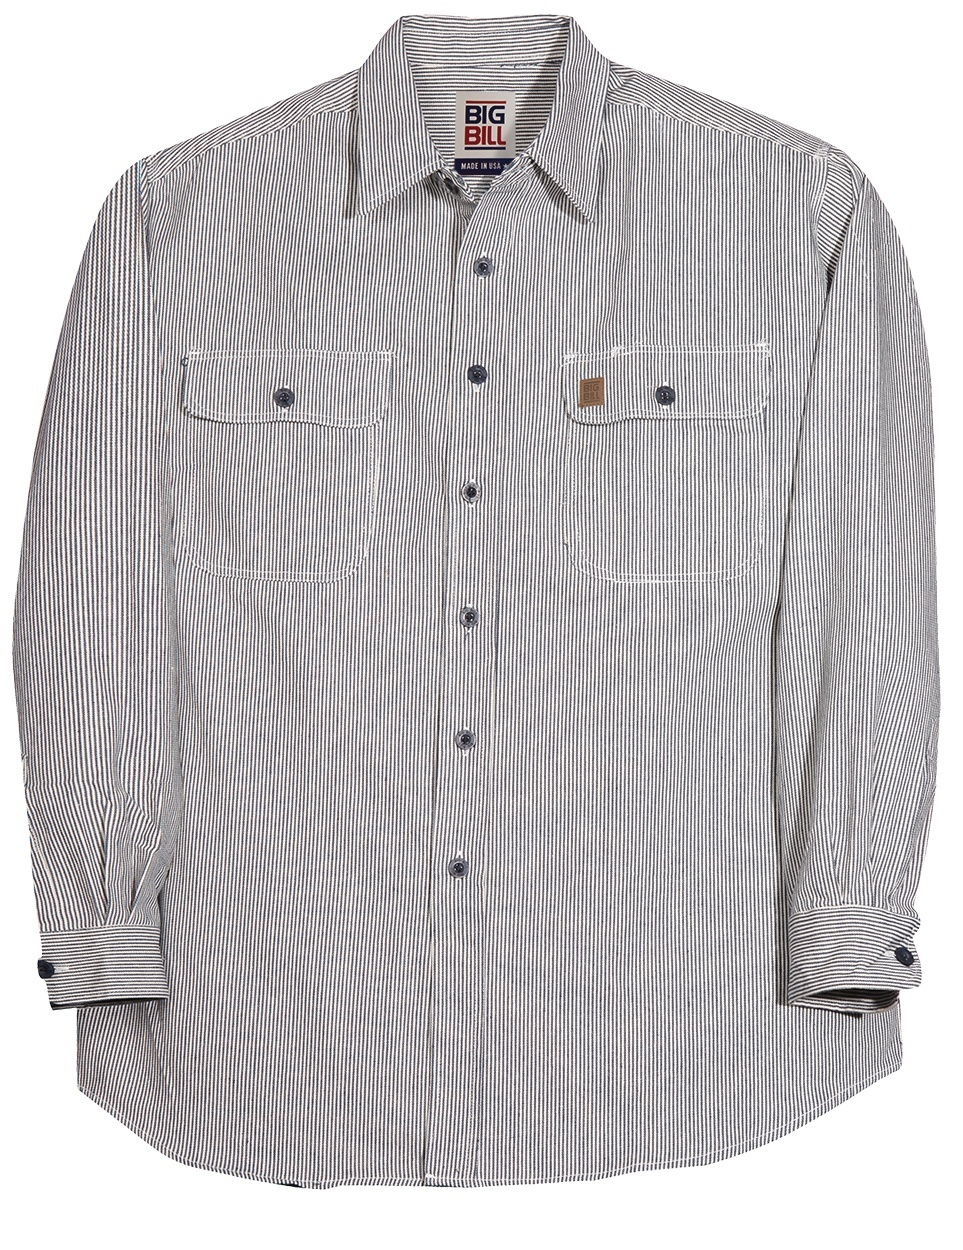 7 oz Button Up Hickory Long Sleeve Shirt-BIG BILL